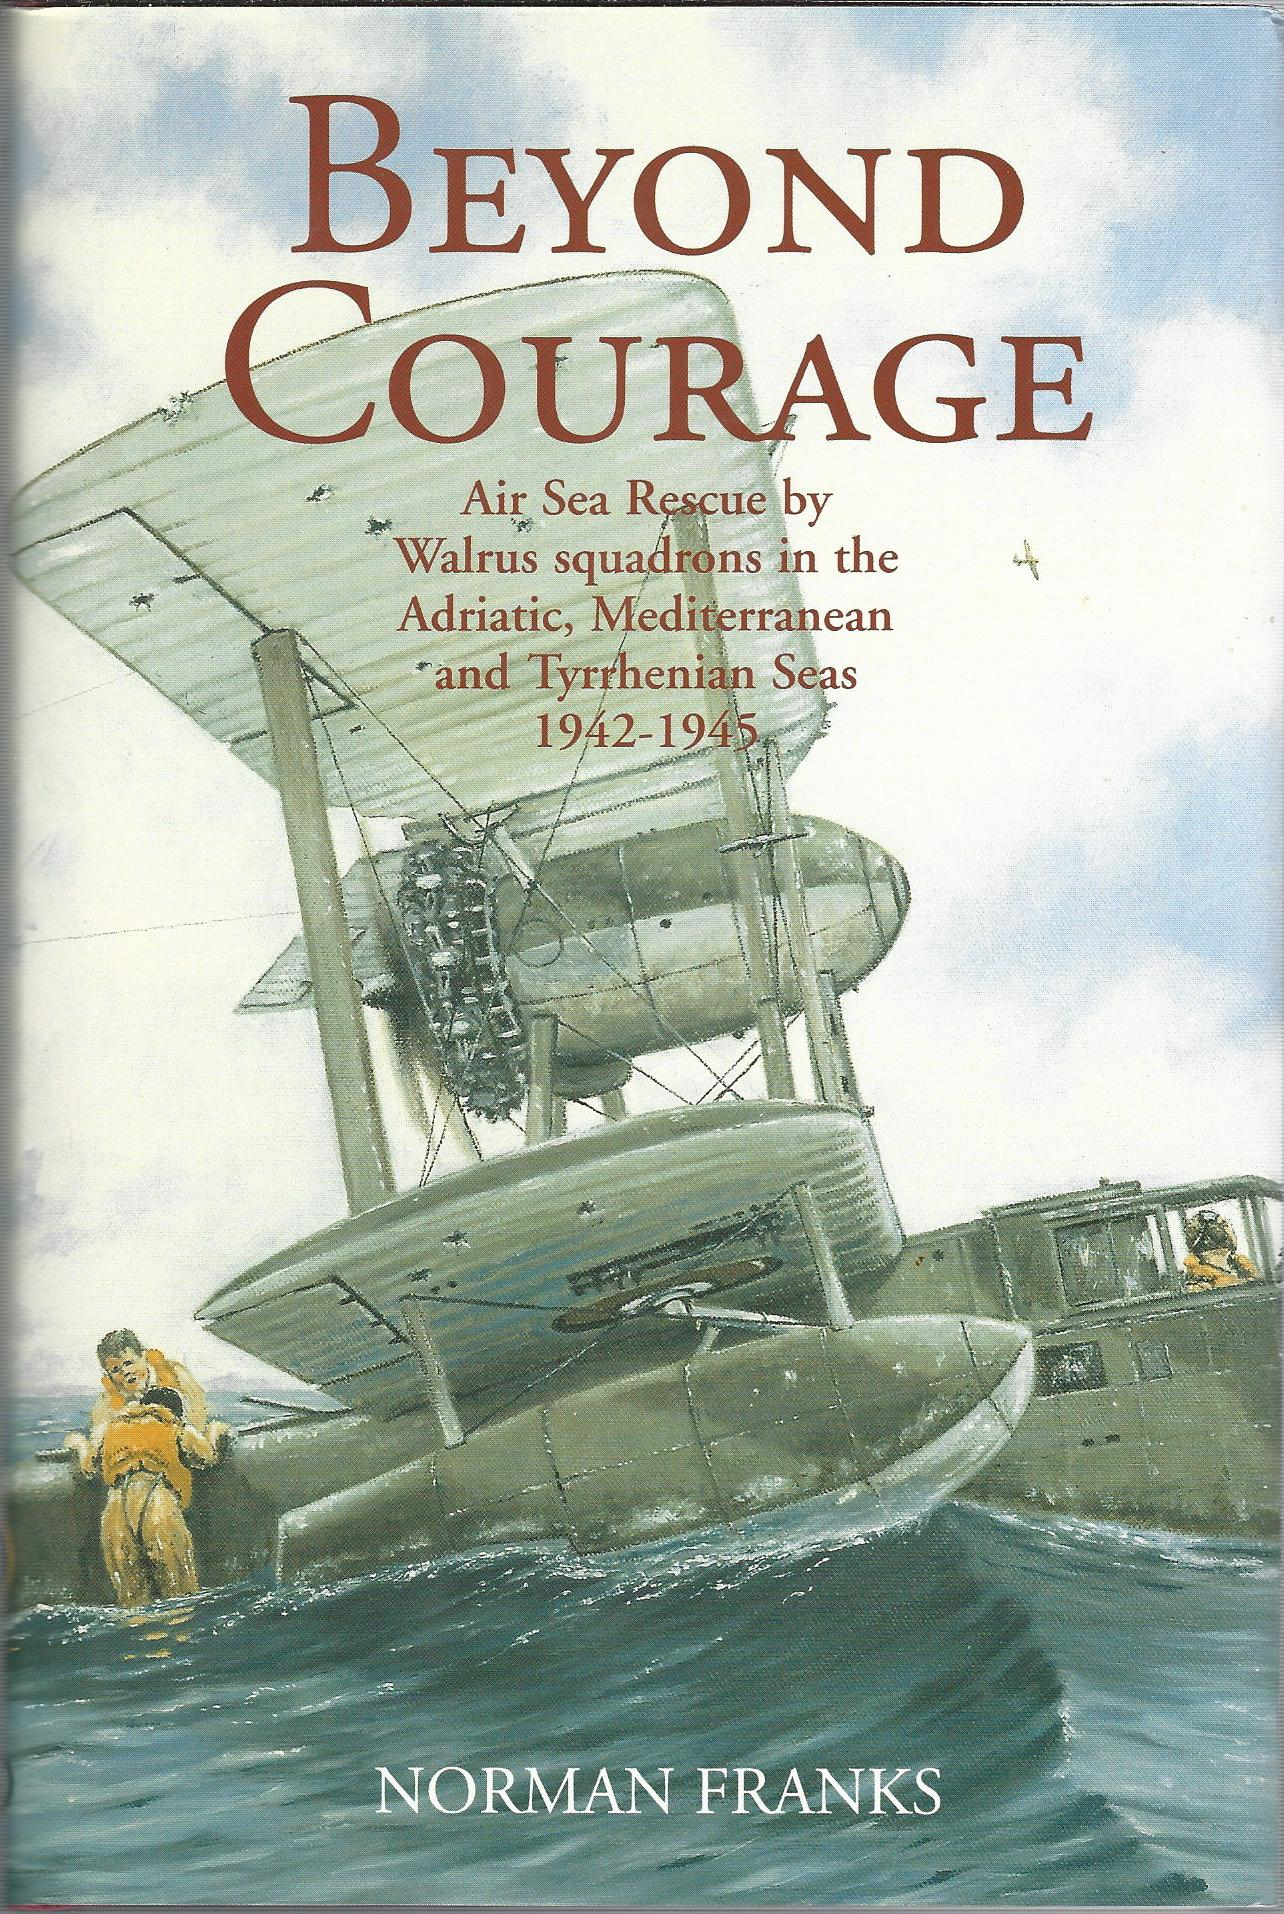 Image for Beyond Courage: Air Sea Rescue by Walrus Squadrons in the Adriatic, Mediterranean and Tyrrhenian Seas 1942-1945.